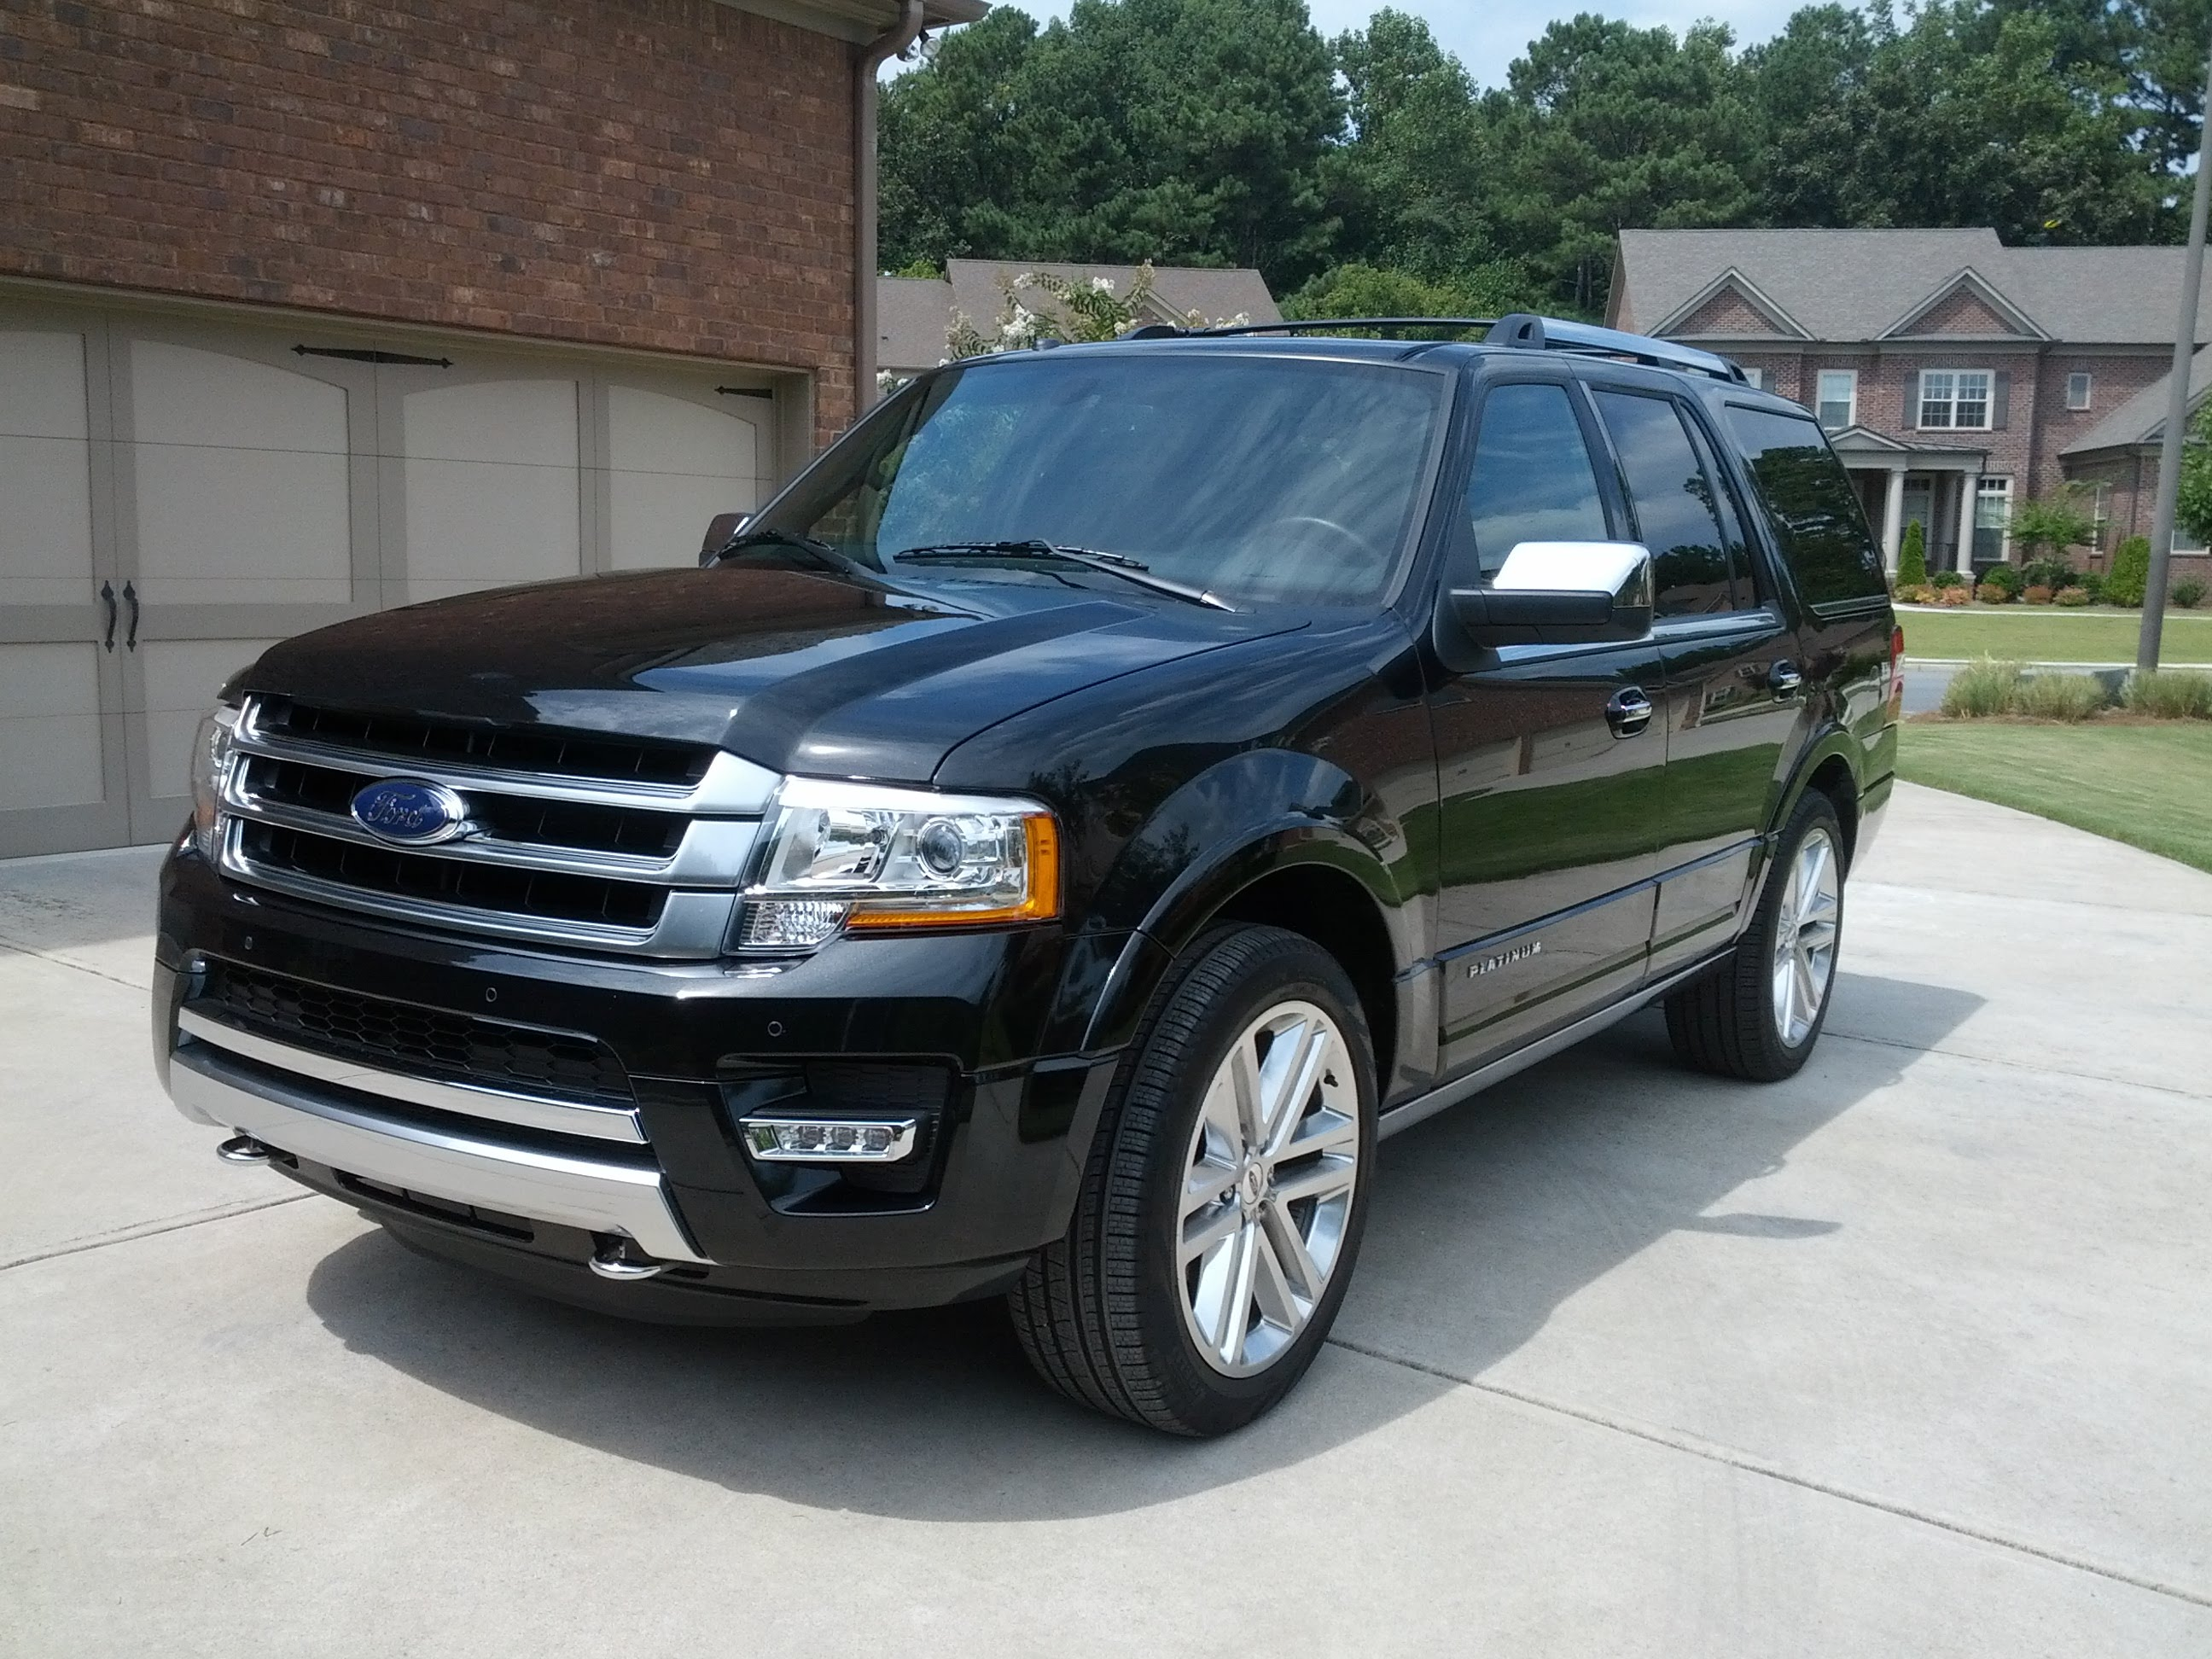 2015 Ford Expedition #11